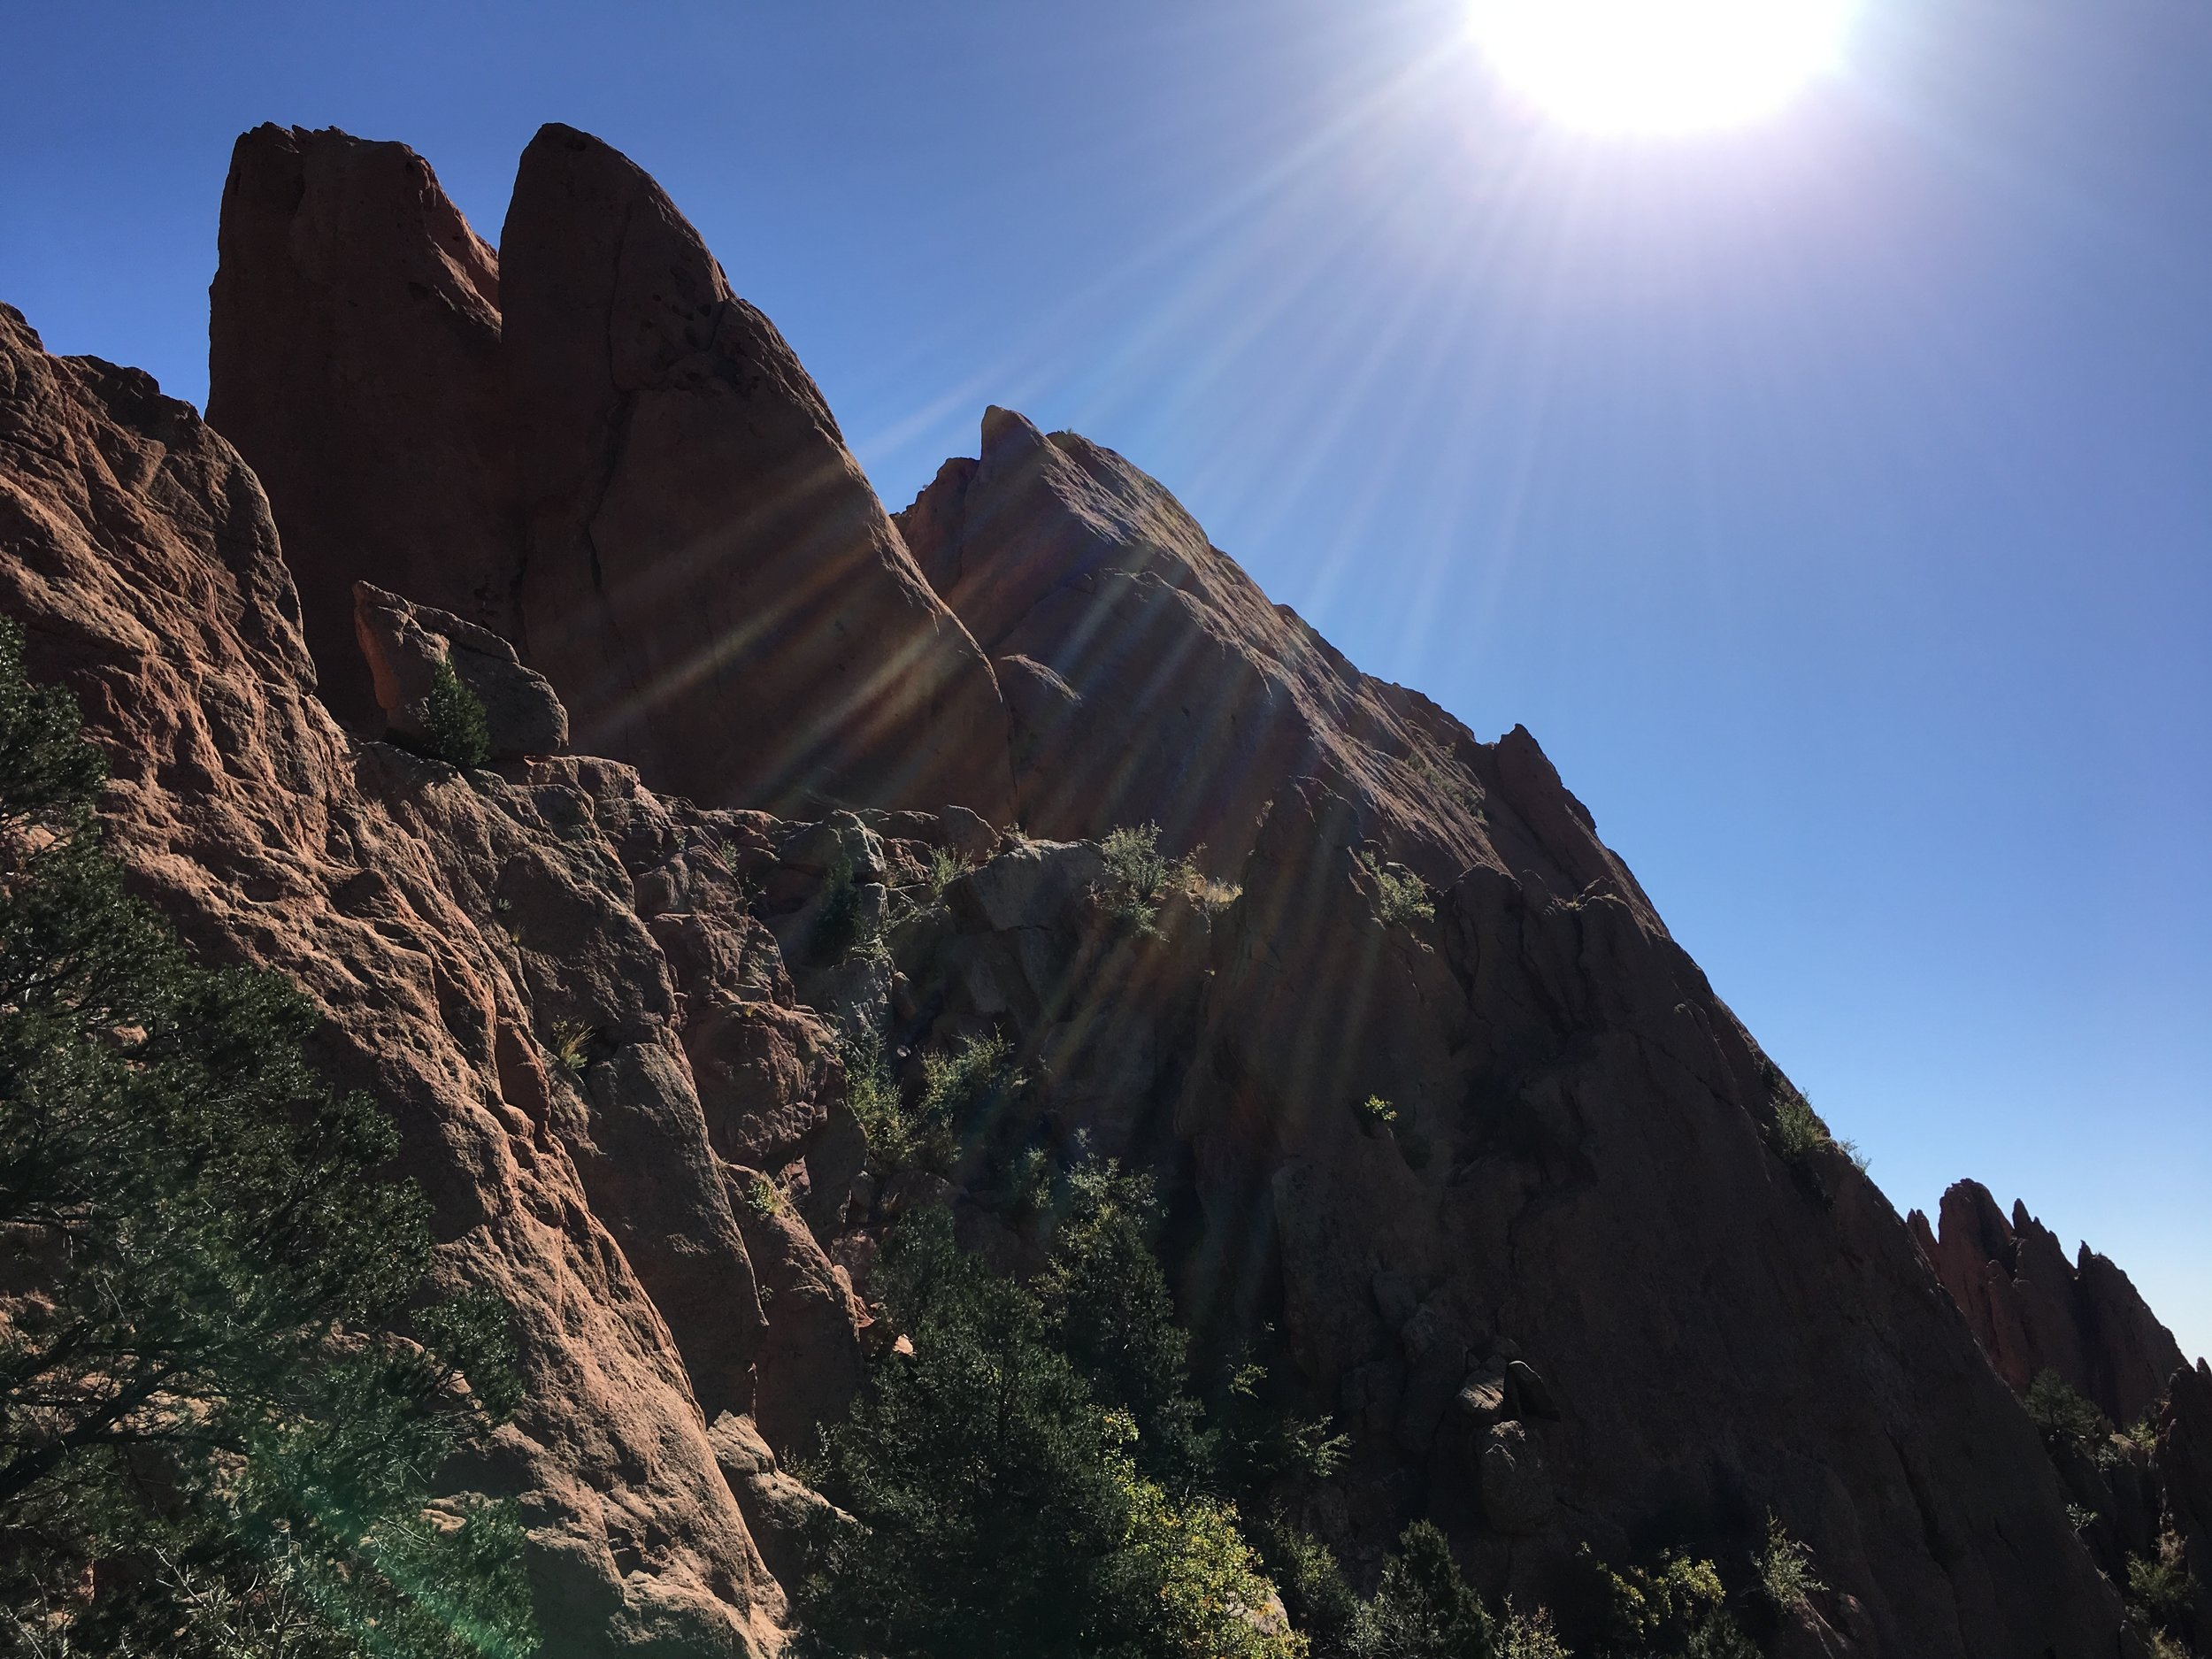 Leg 3, the third and final leg of my two-week adventure. Garden of the Gods, Colorado Springs, Colorado. October 2016.